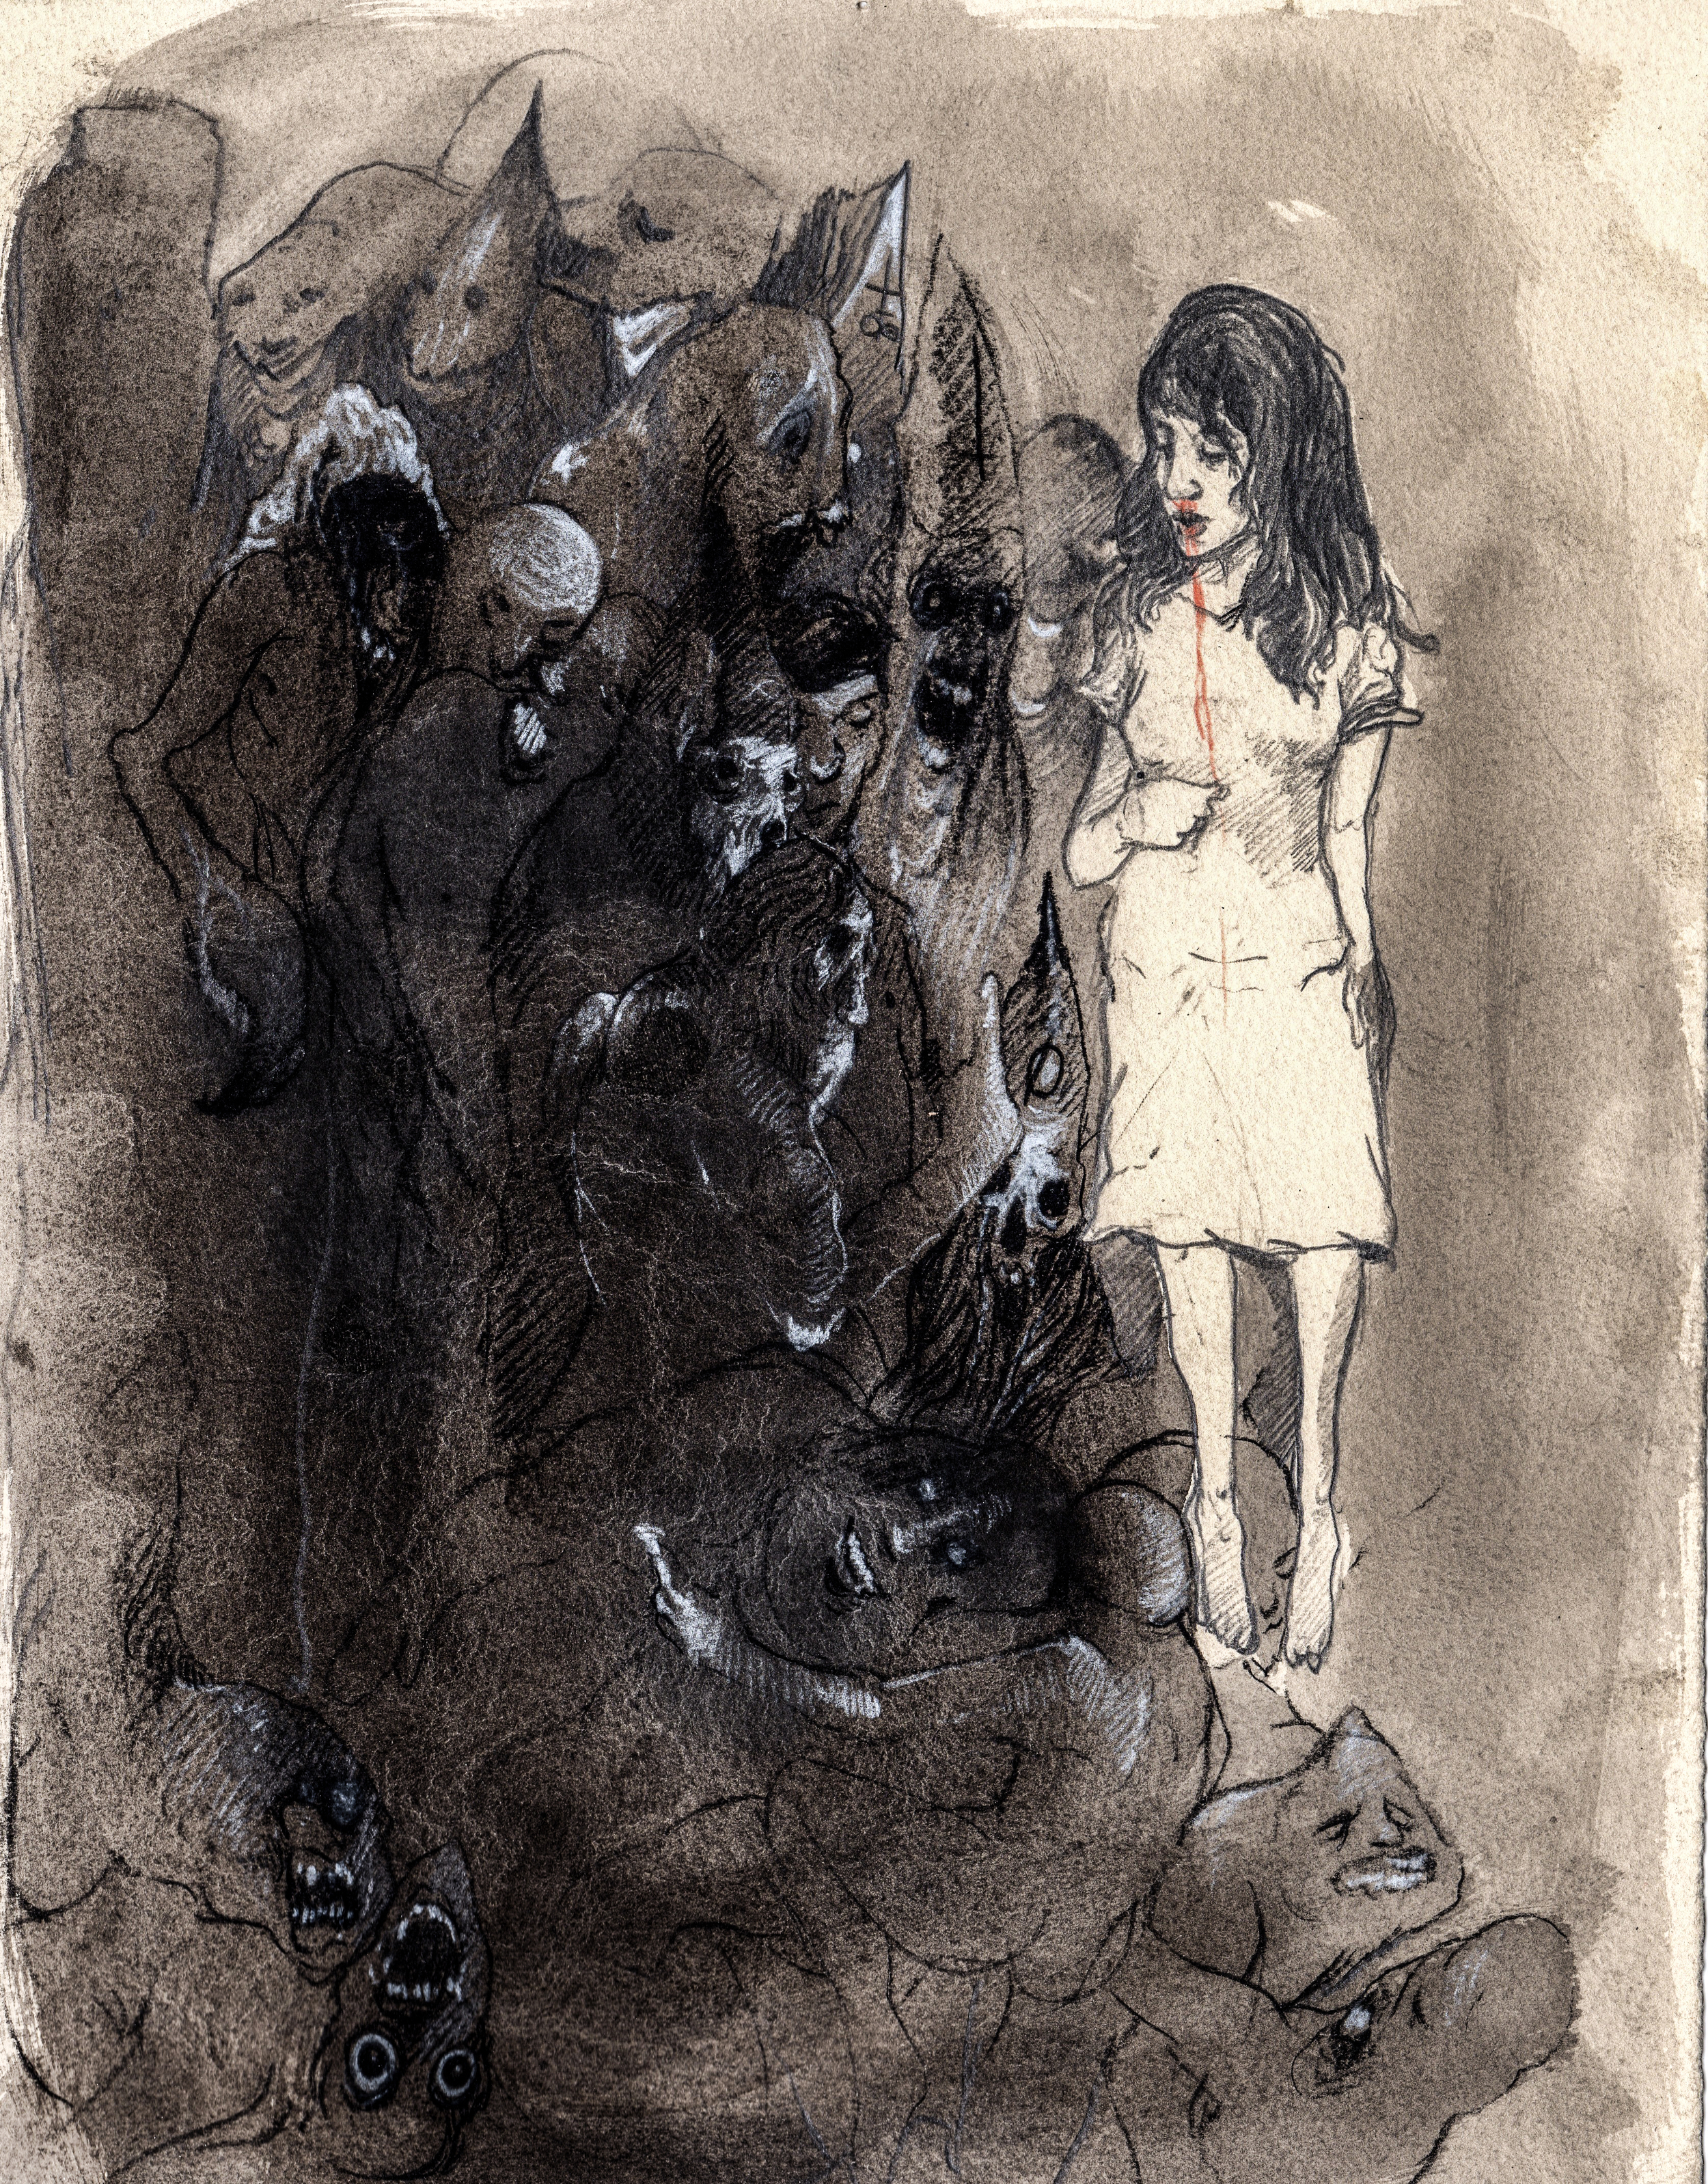 She came to me as blood and fluid.  2013. 10 x 12 inches. Ink wash on paper.